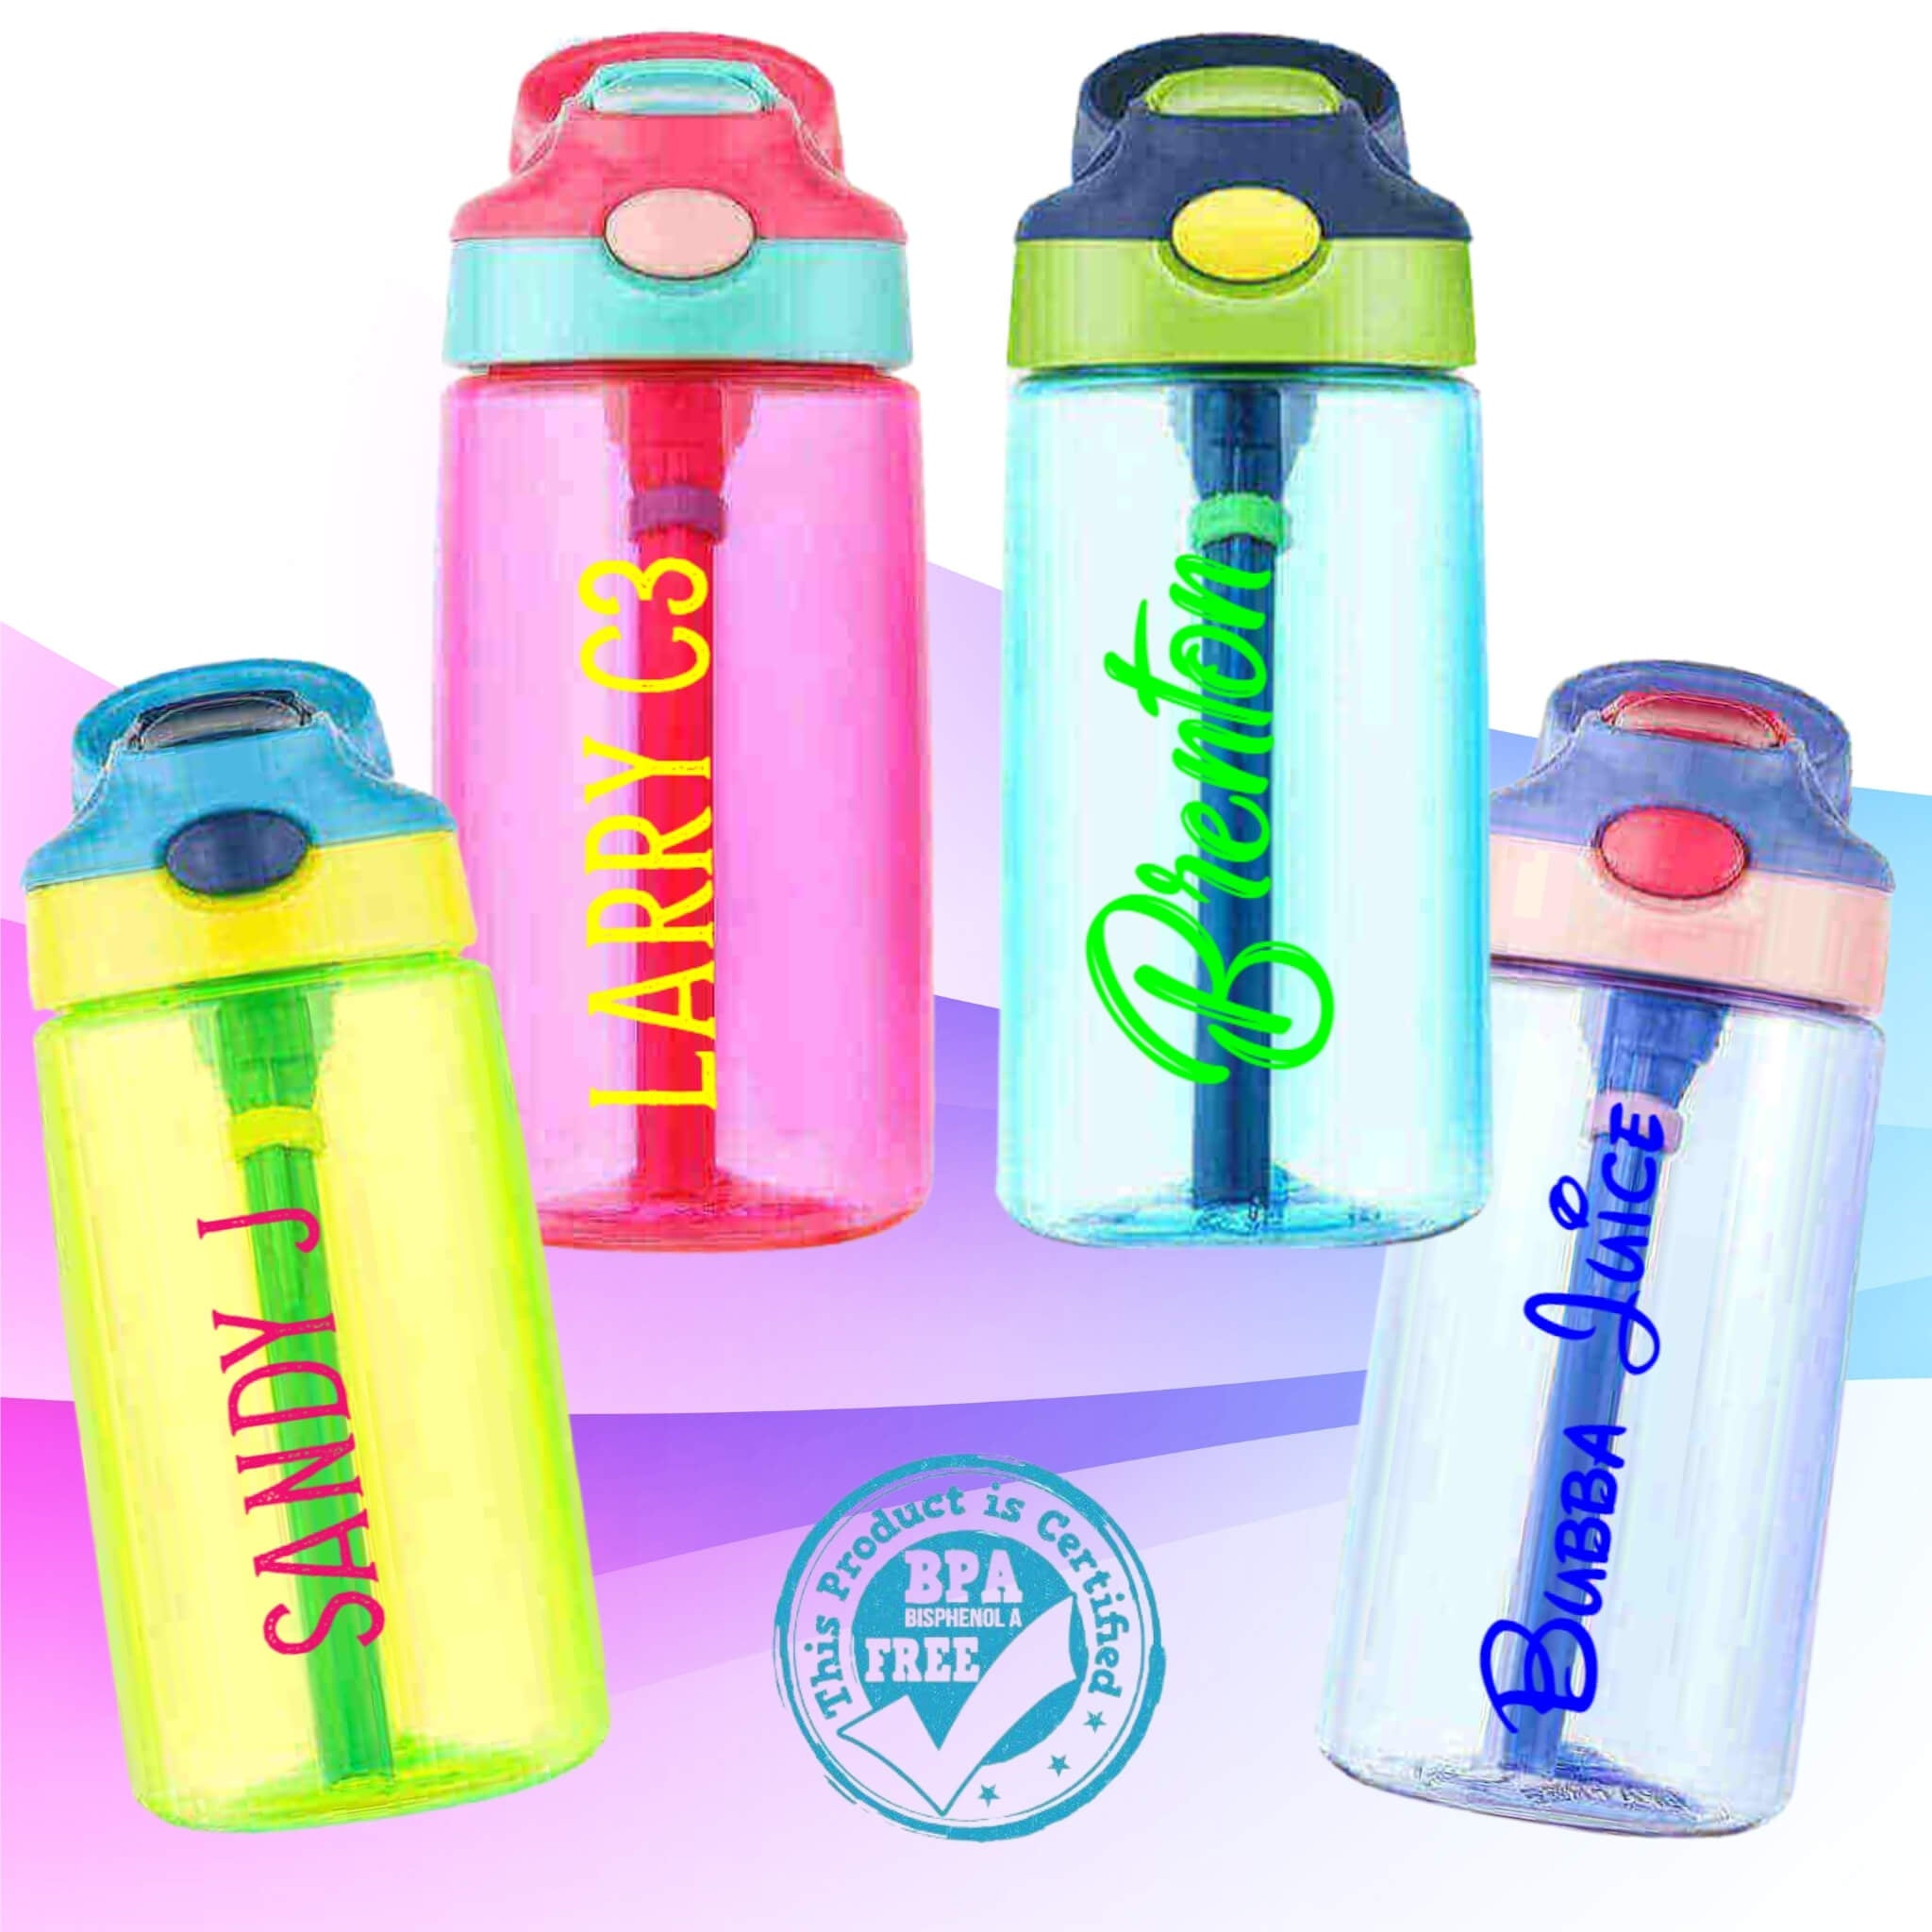 Eco Kids BPA Free Drink Bottle with Name I Design AirPods Cases